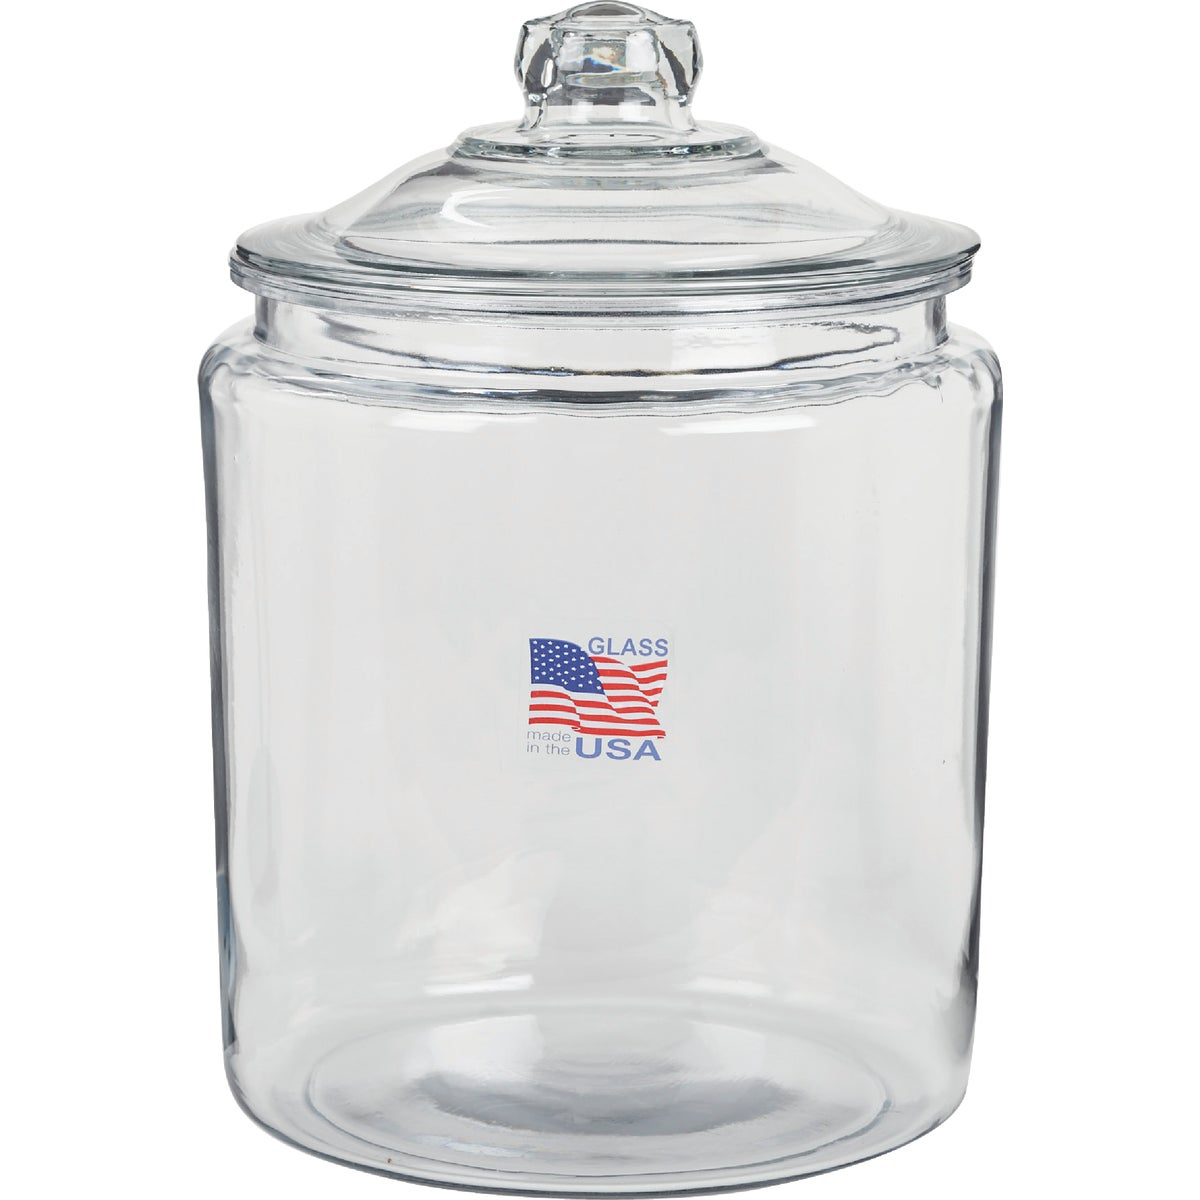 2 GALLON STORAGE JAR